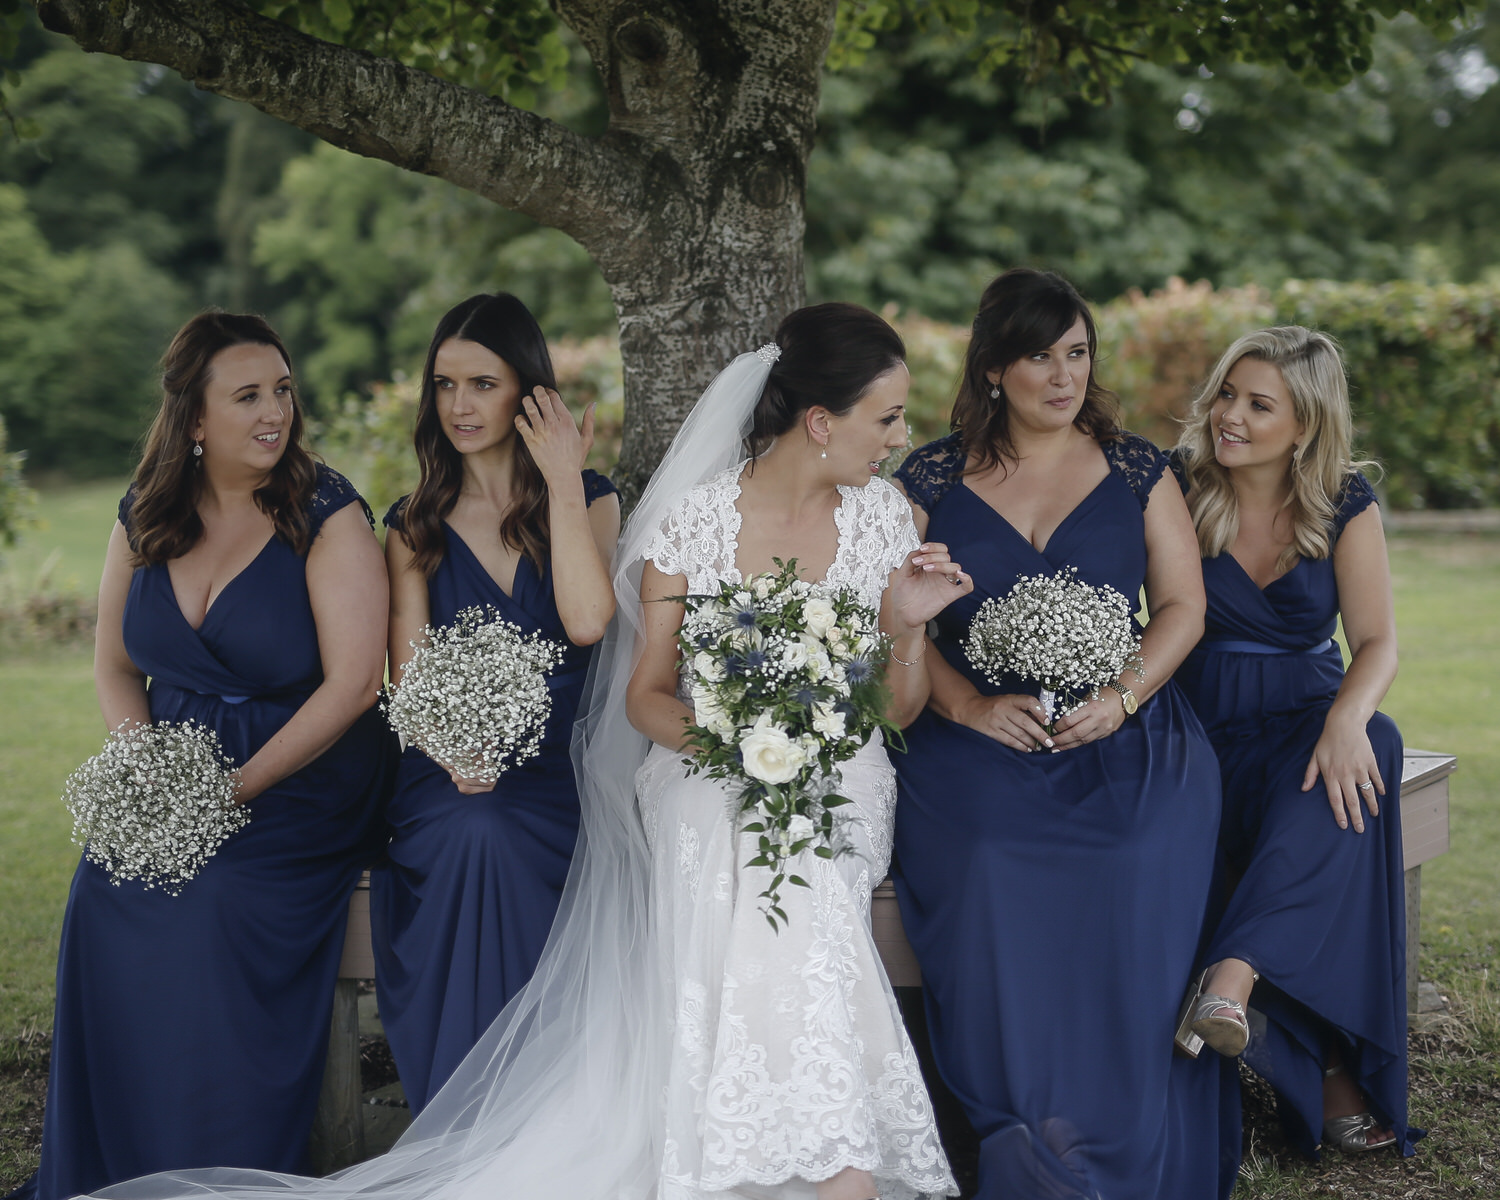 waterford_faithlegg_wedding_photographer_goldenmonentsweddingphotography_a569.jpg